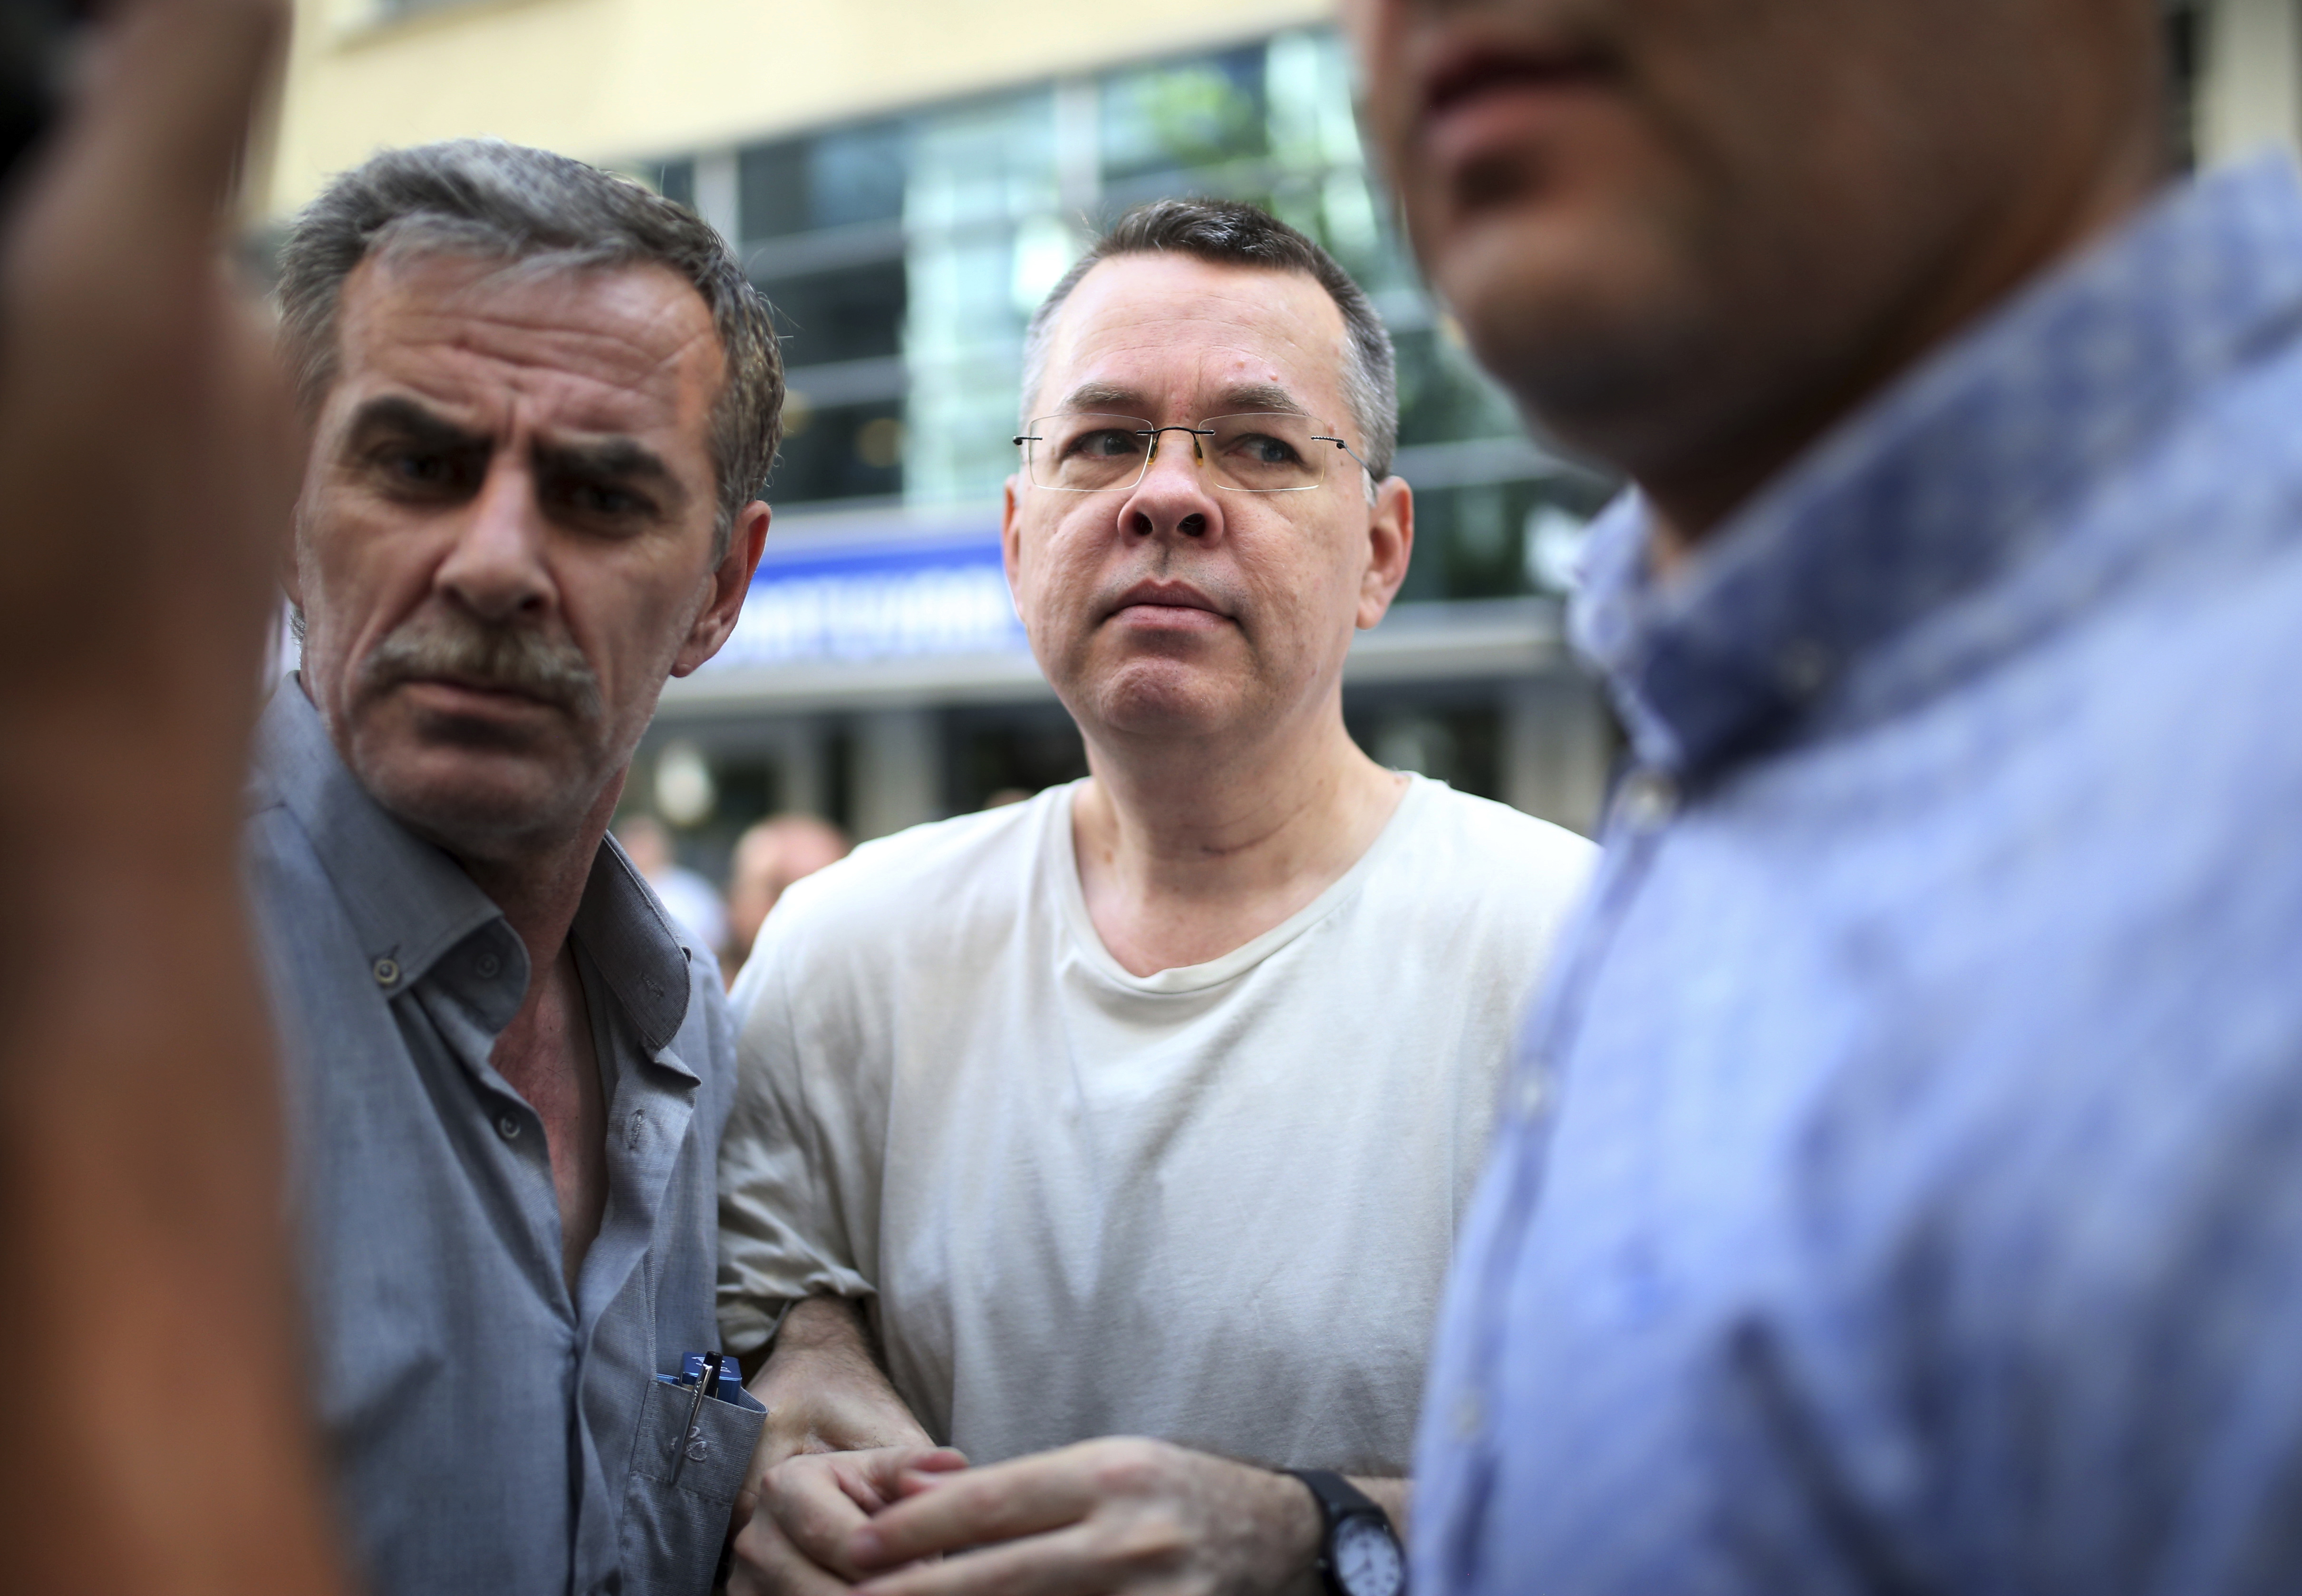 Andrew Craig Brunson, an evangelical pastor from Black Mountain, North Carolina, arrives at his house in Izmir, Turkey, July 25, 2018.